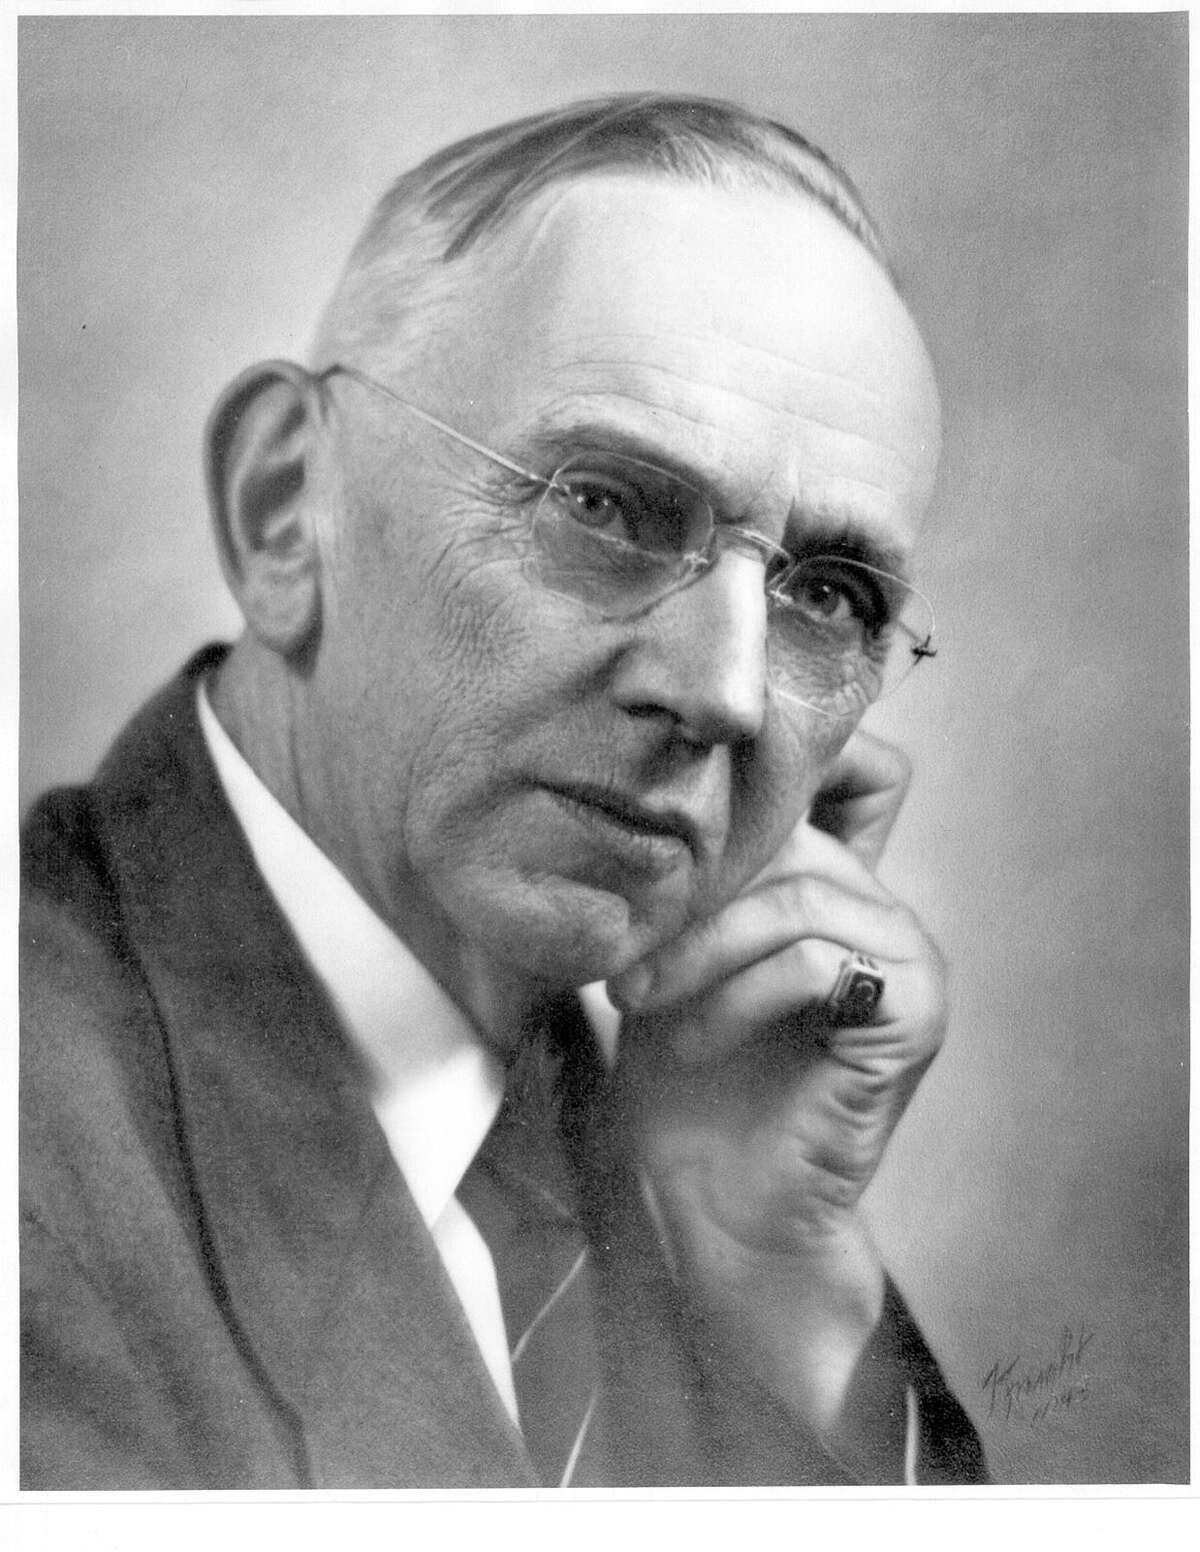 """Edgar Cayce, known as """"the Sleeping Prophet,"""" claimed to have a long lost past and predicted the future."""